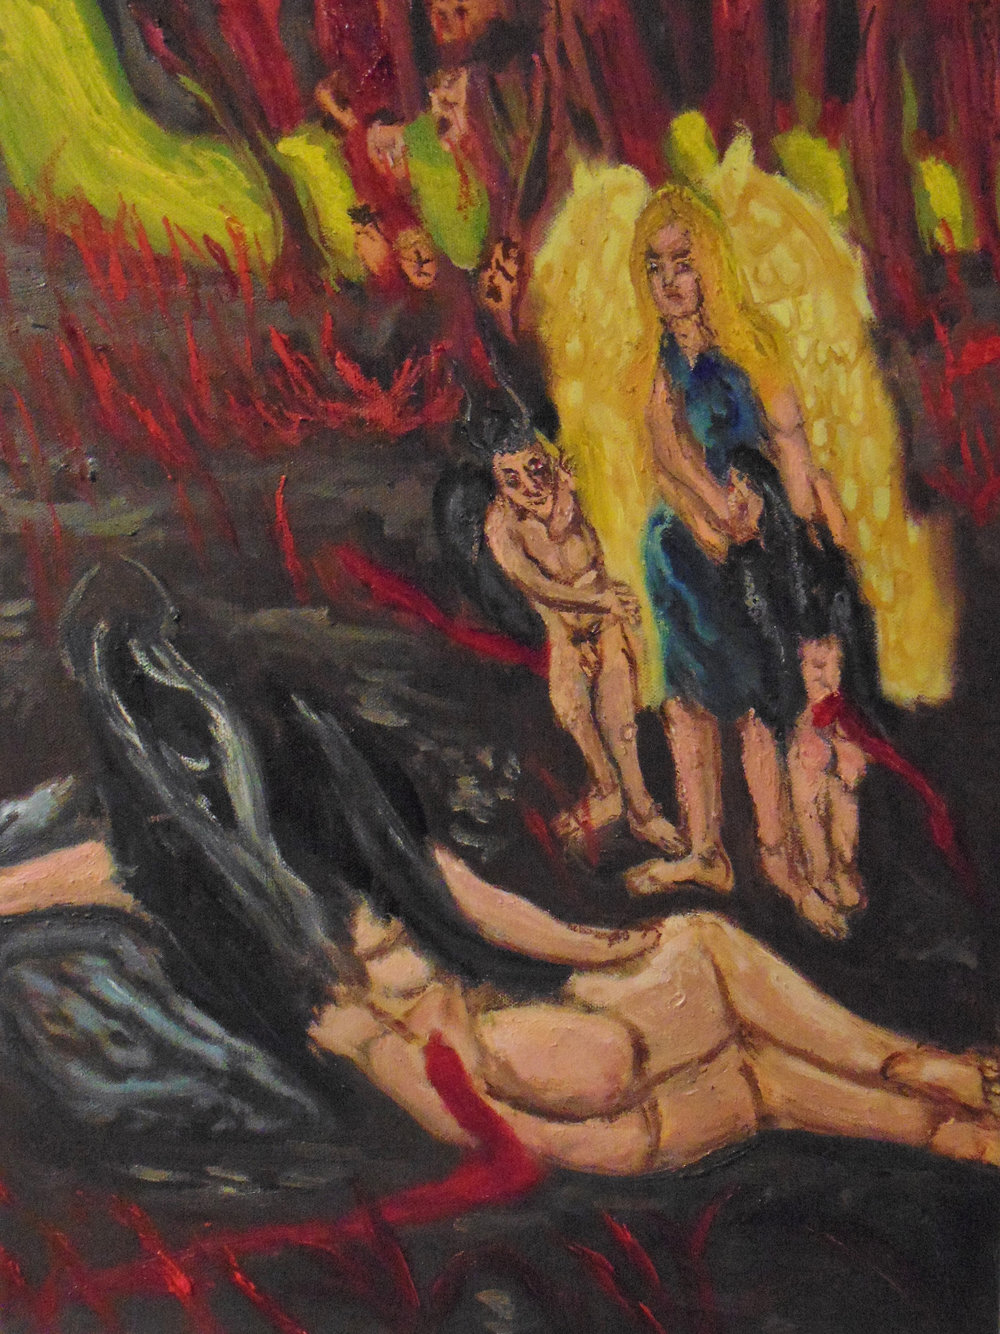 Angel and Demon in the Garden of Evil painting.jpg